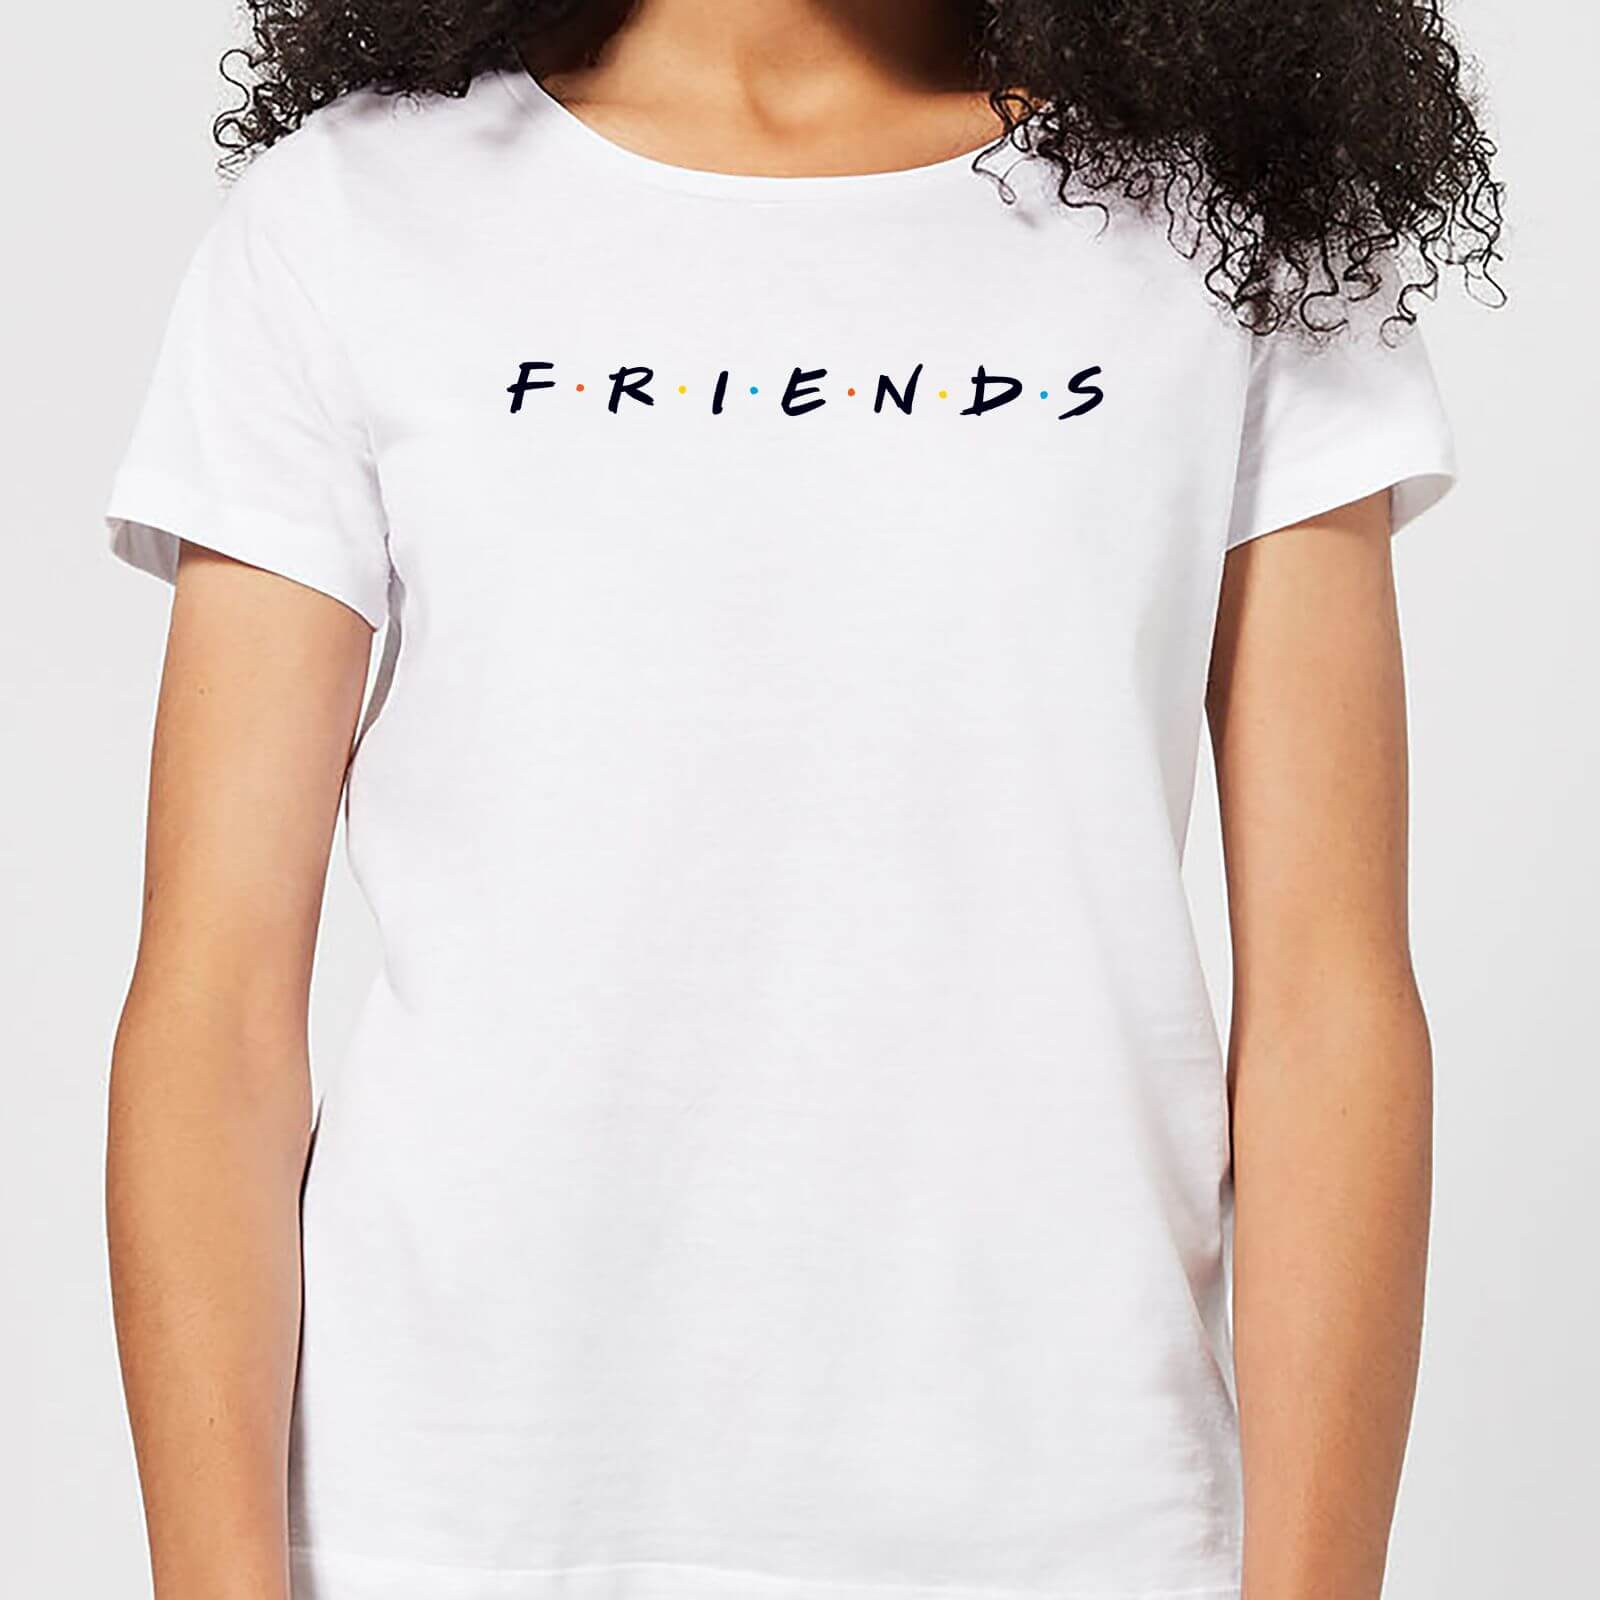 8204d4239 Friends Logo Women's T-Shirt - White | IWOOT